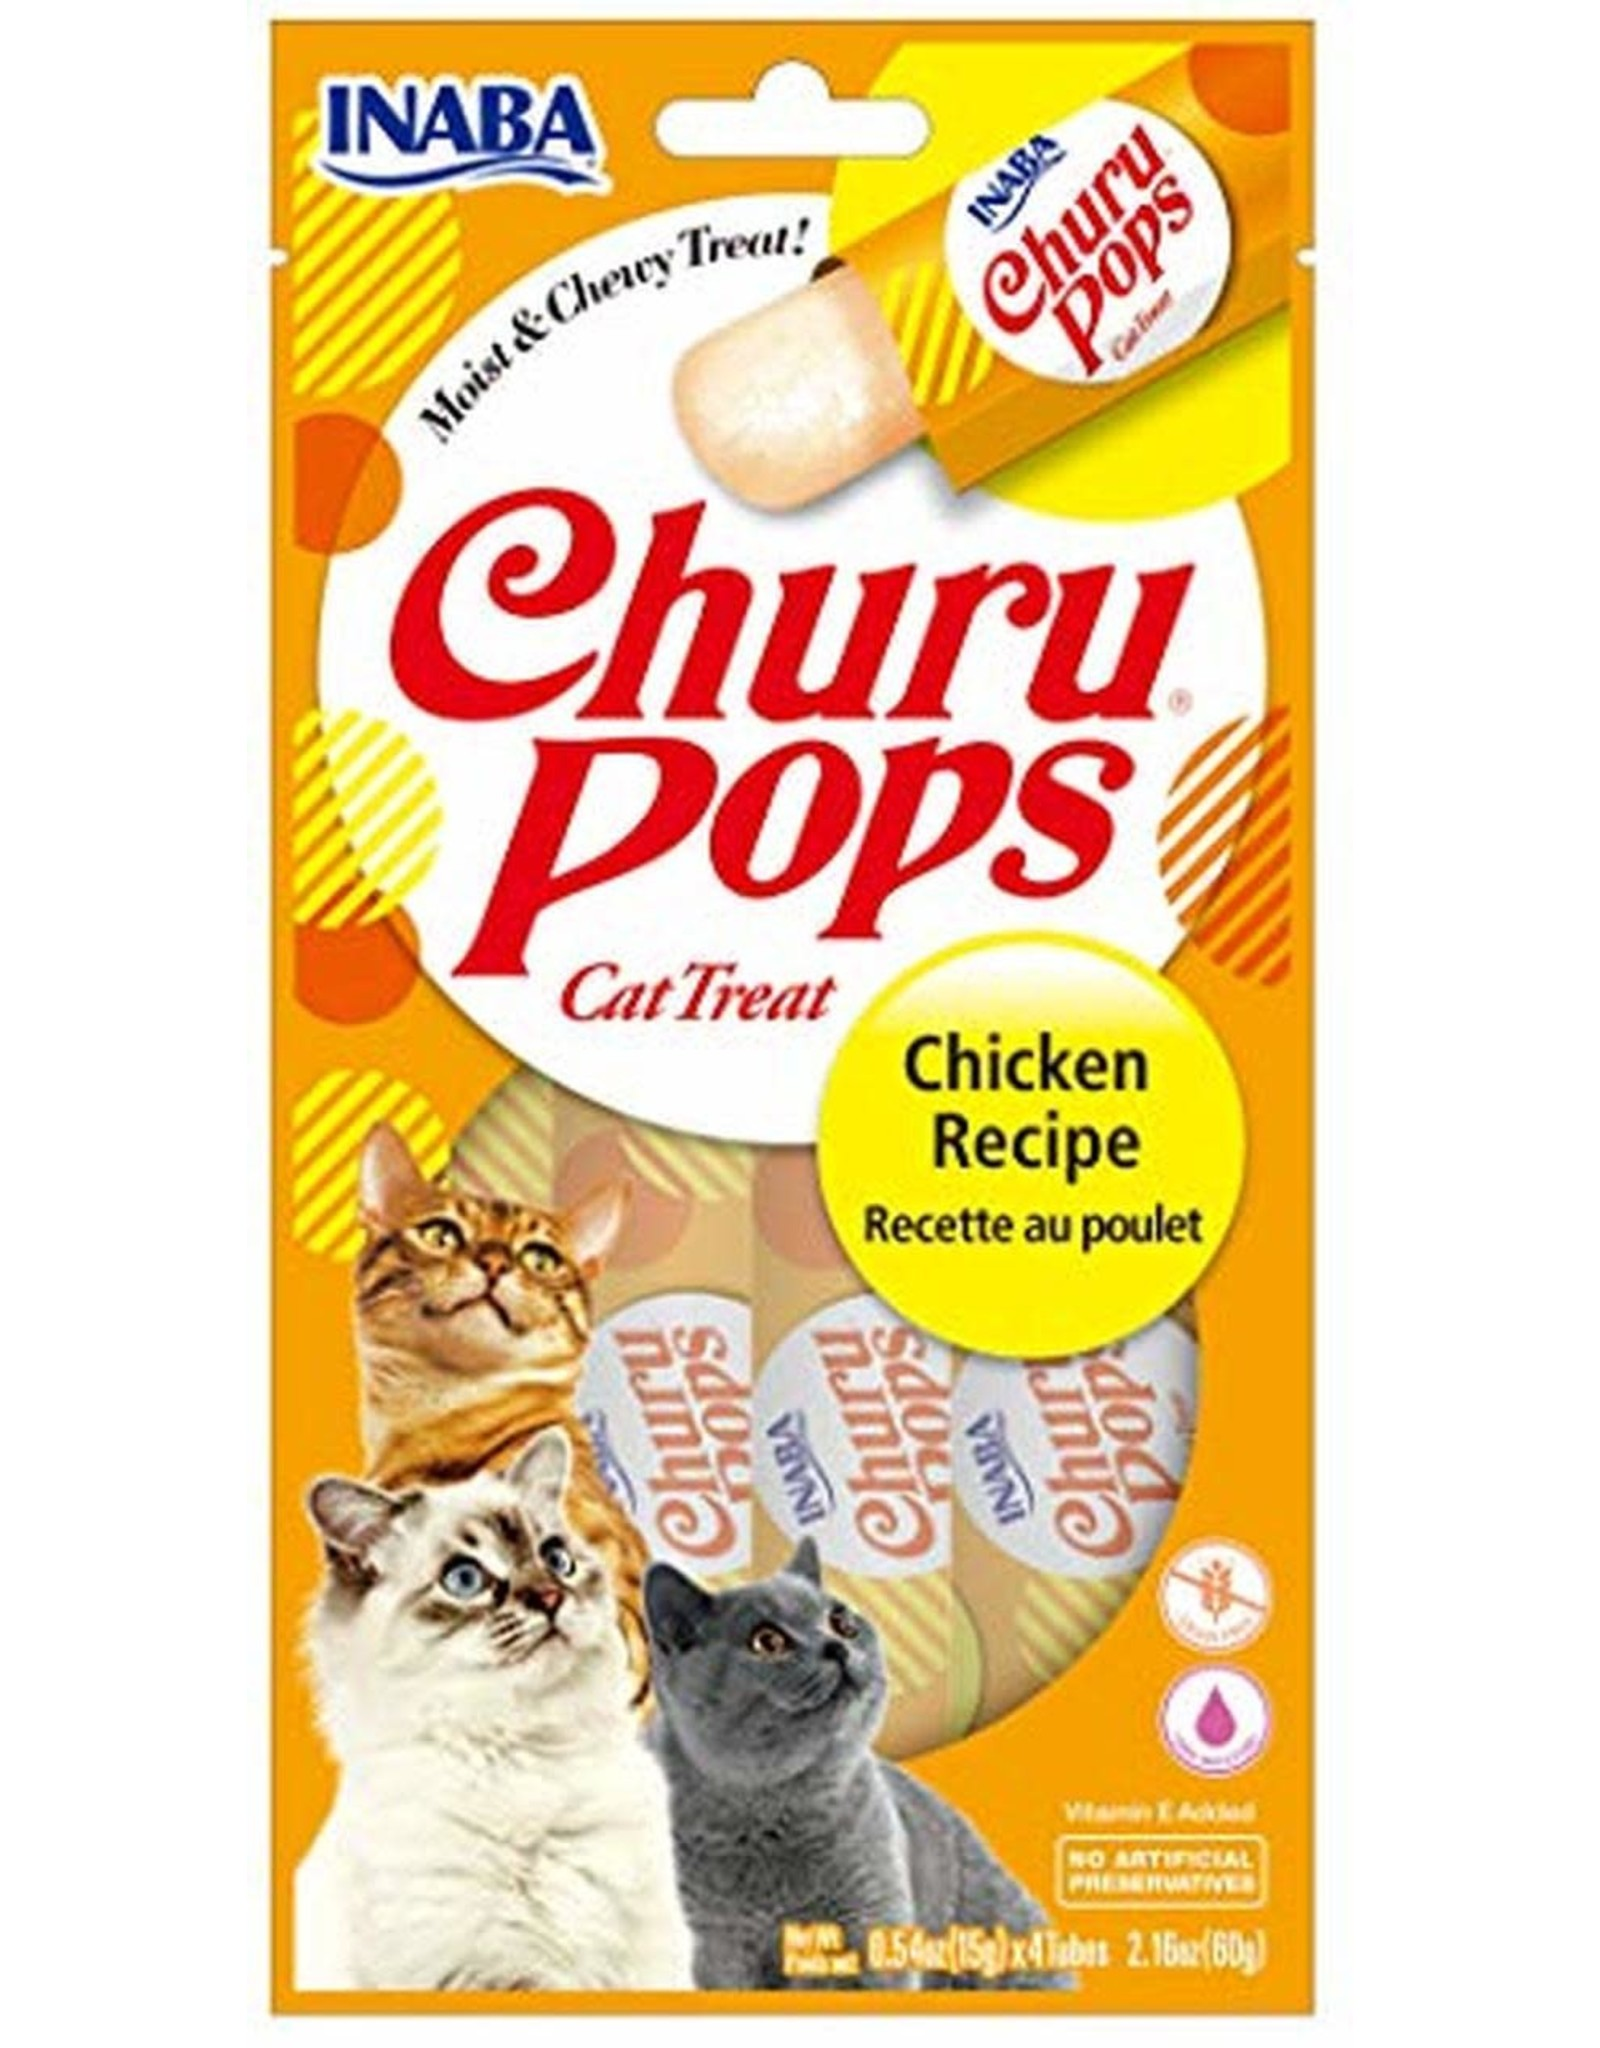 Inaba INABA CAT CHURU POPS CHICKEN RECIPE 4-COUNT